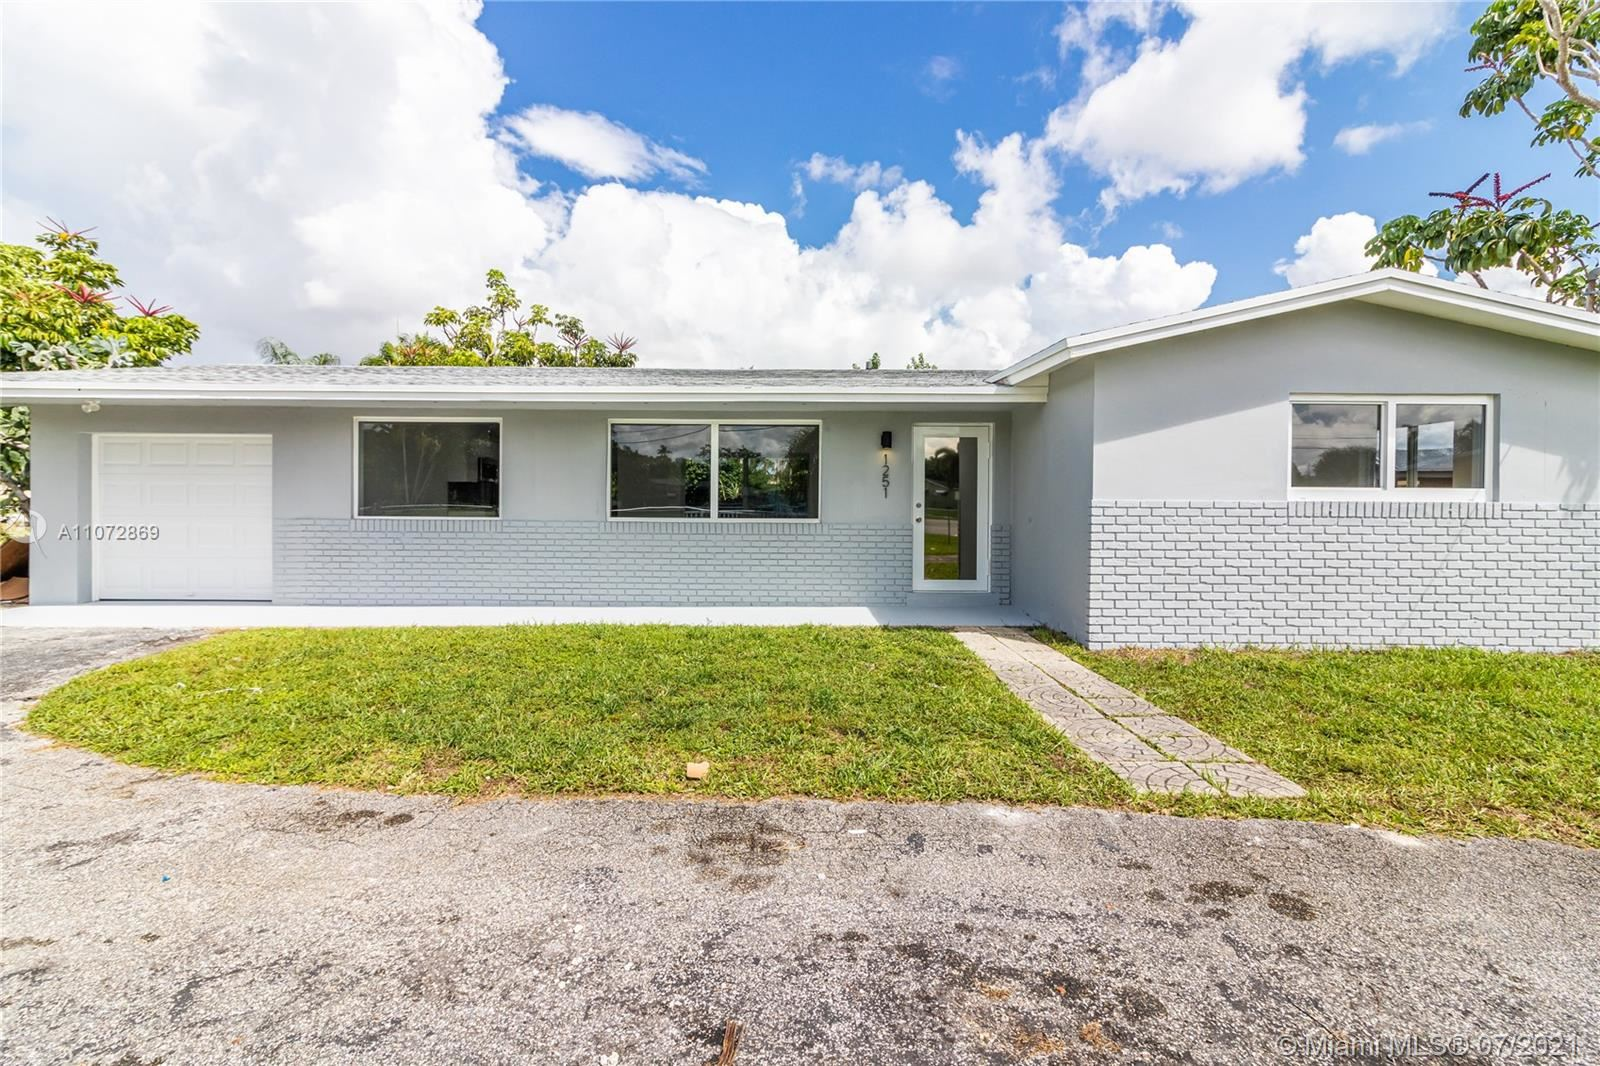 Photo of 1251 NW 60th Ave, Sunrise, FL 33313 (MLS # A11072869)